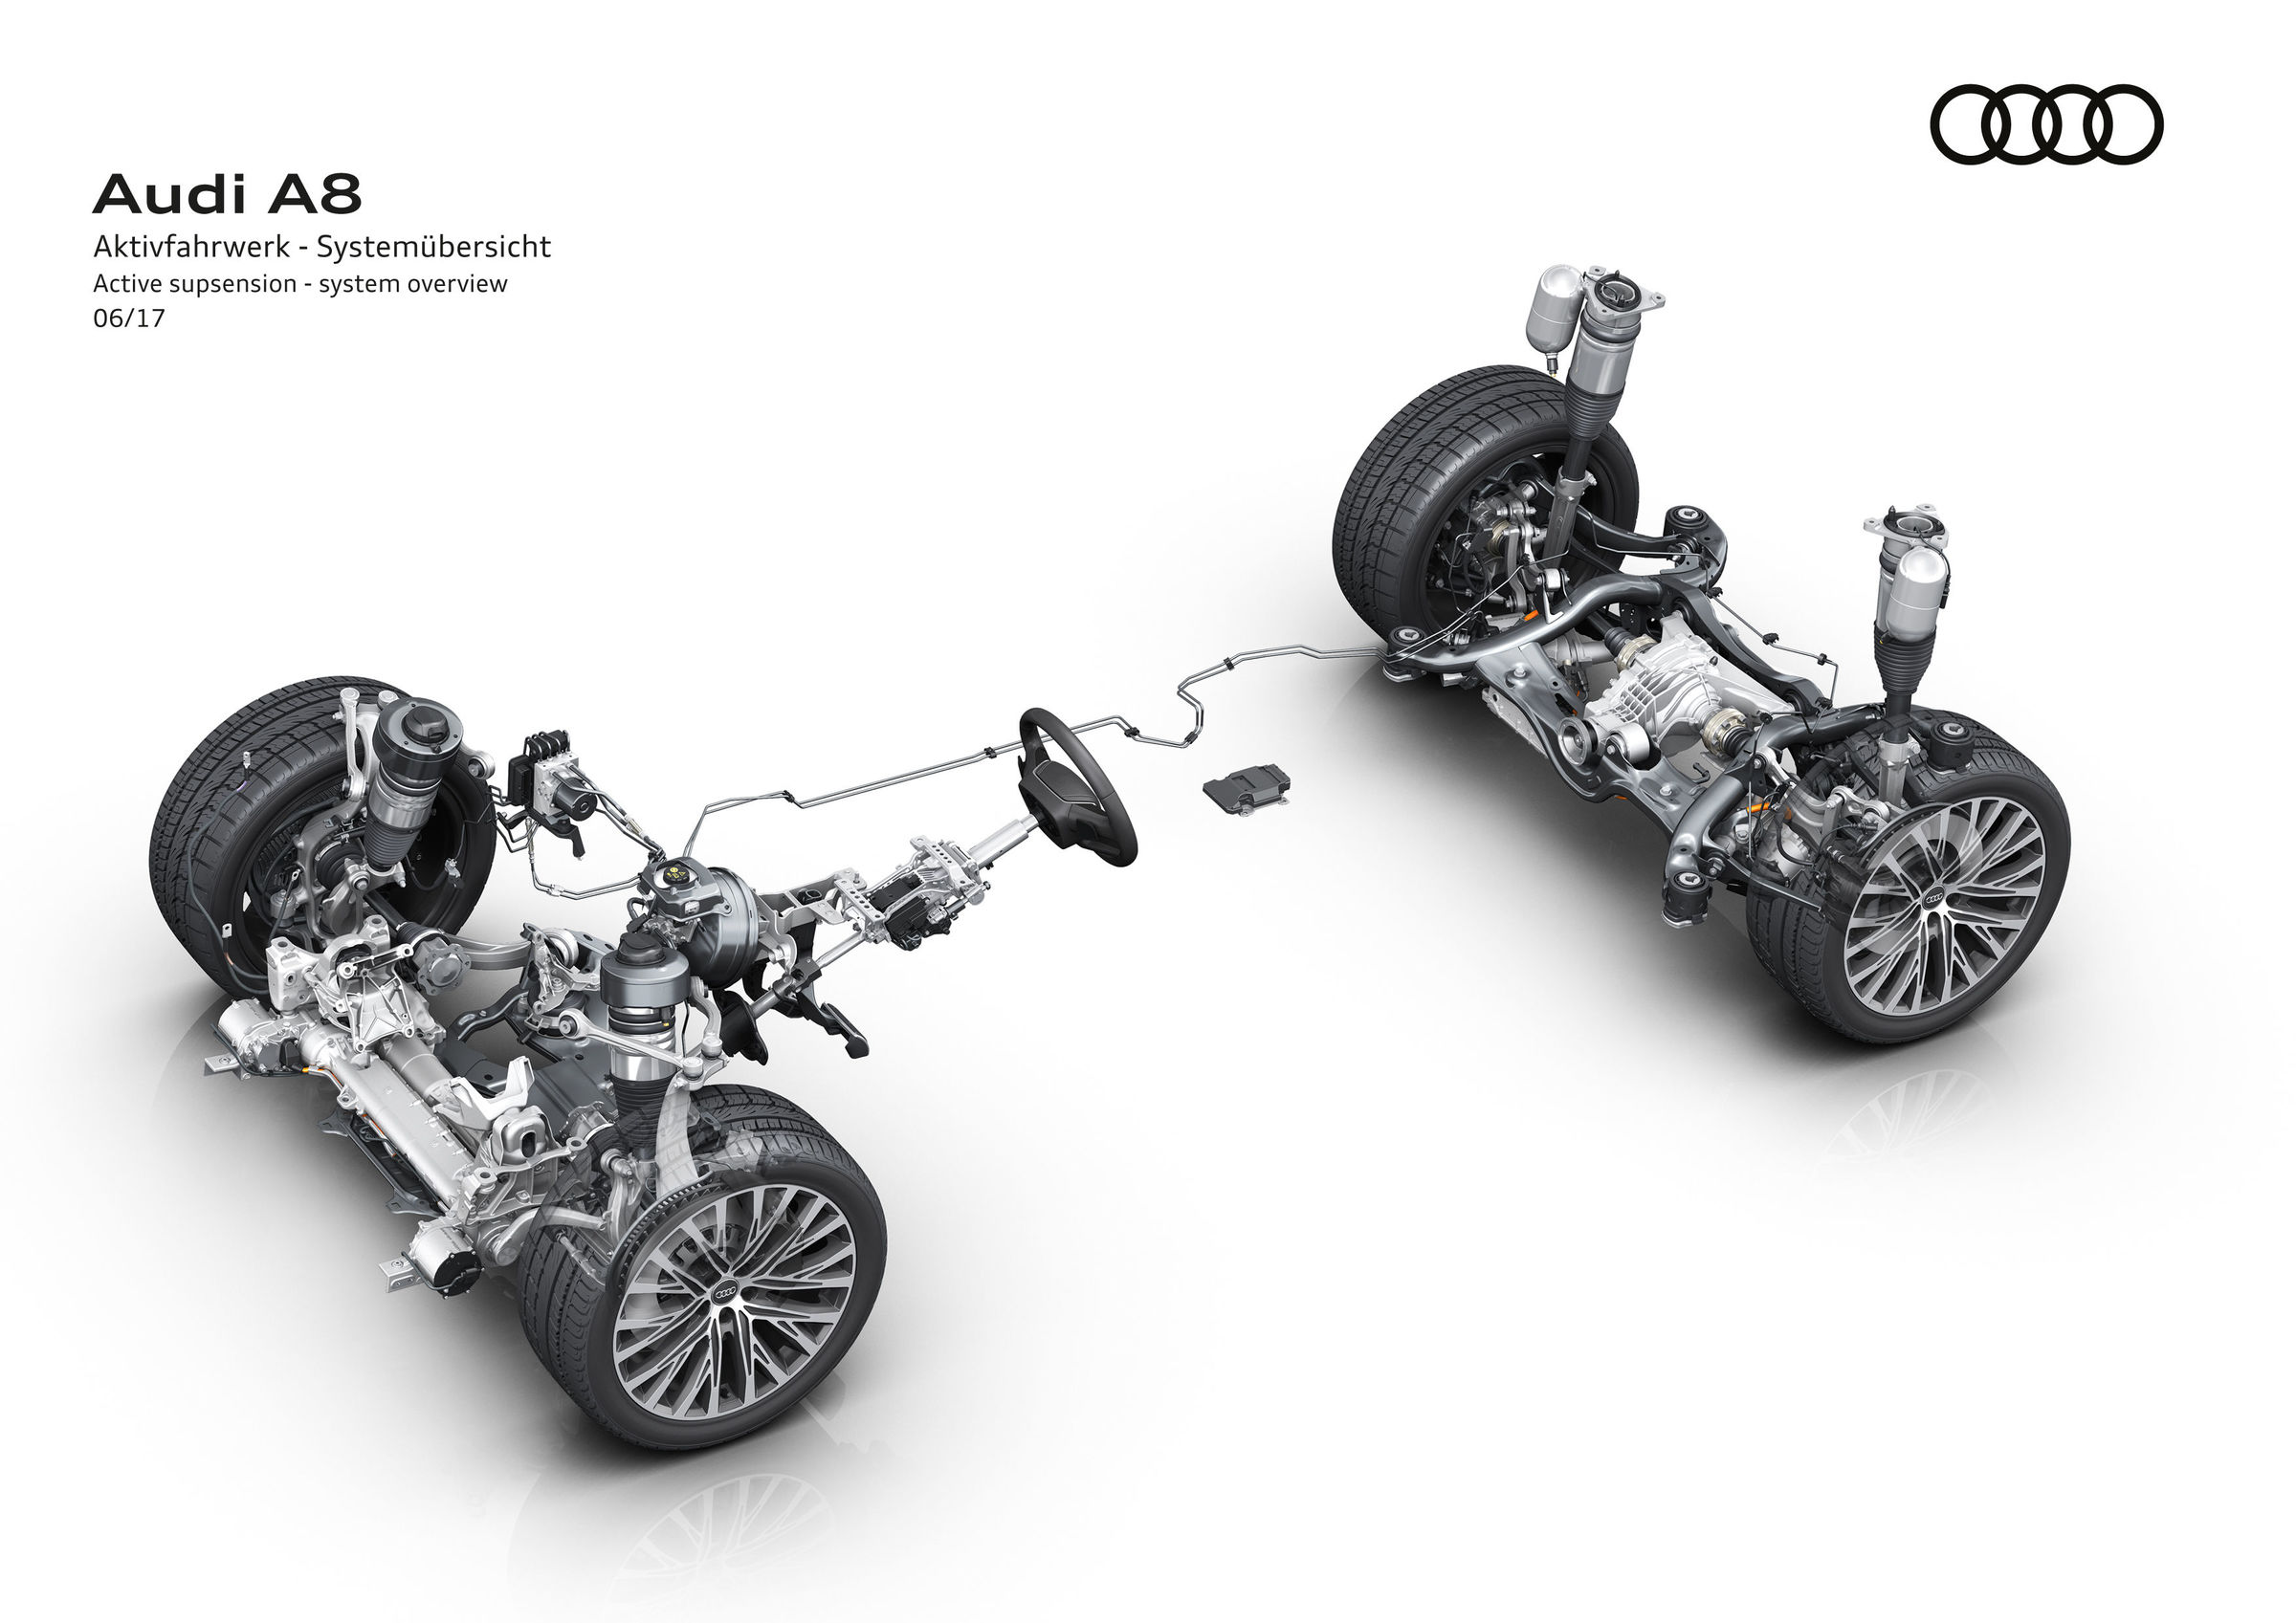 Looking Ahead To The New Audi A8 Fully Active Suspension Offers Engine Fuel Diagram